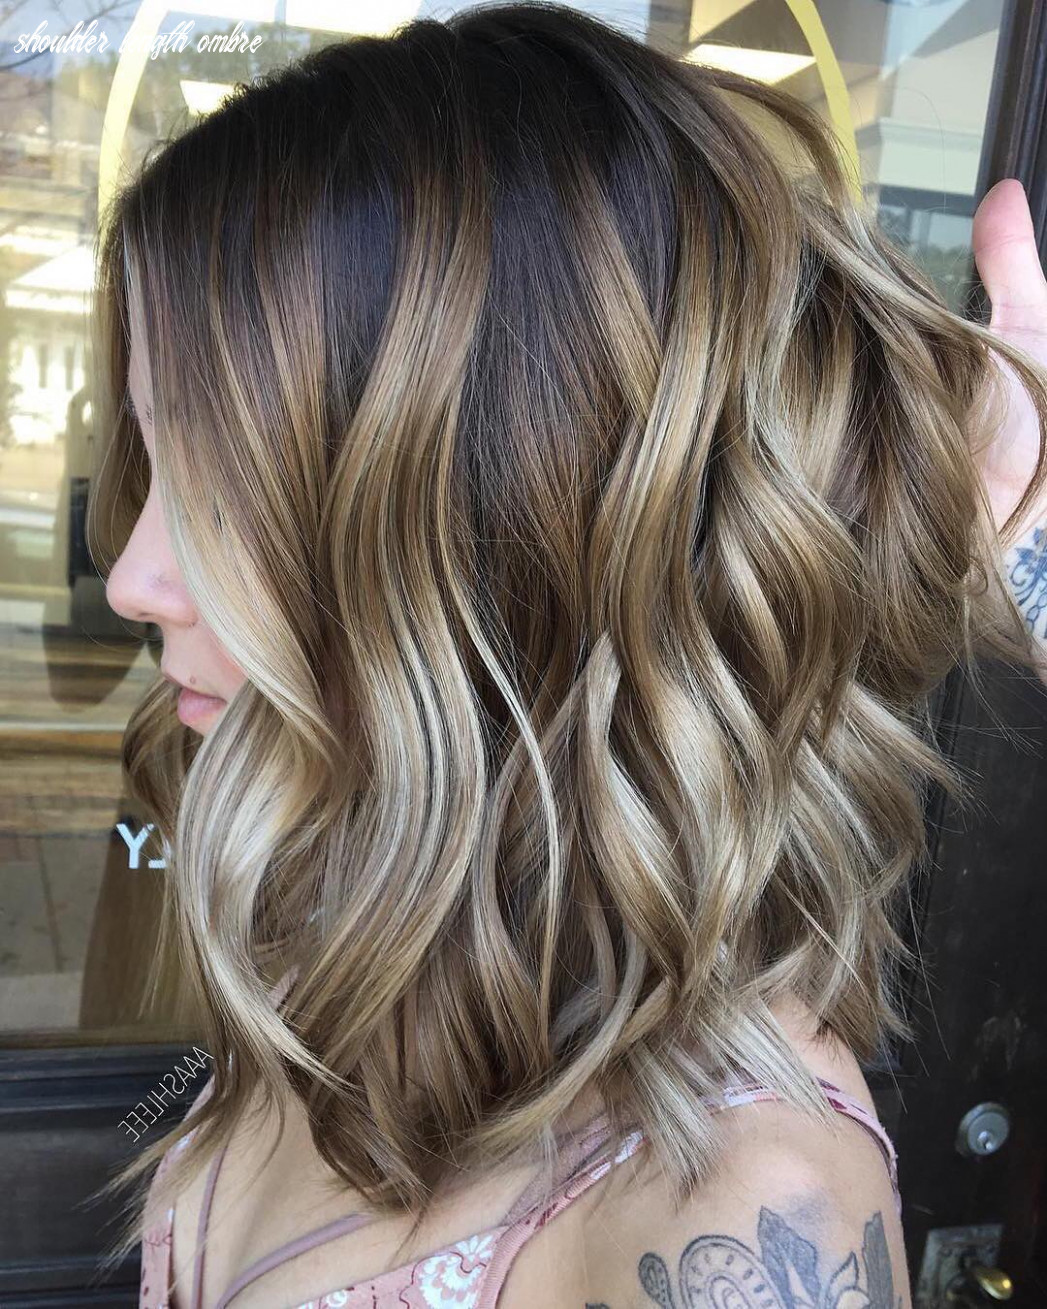 8 ombre balayage hairstyles for medium length hair, hair color 8 shoulder length ombre